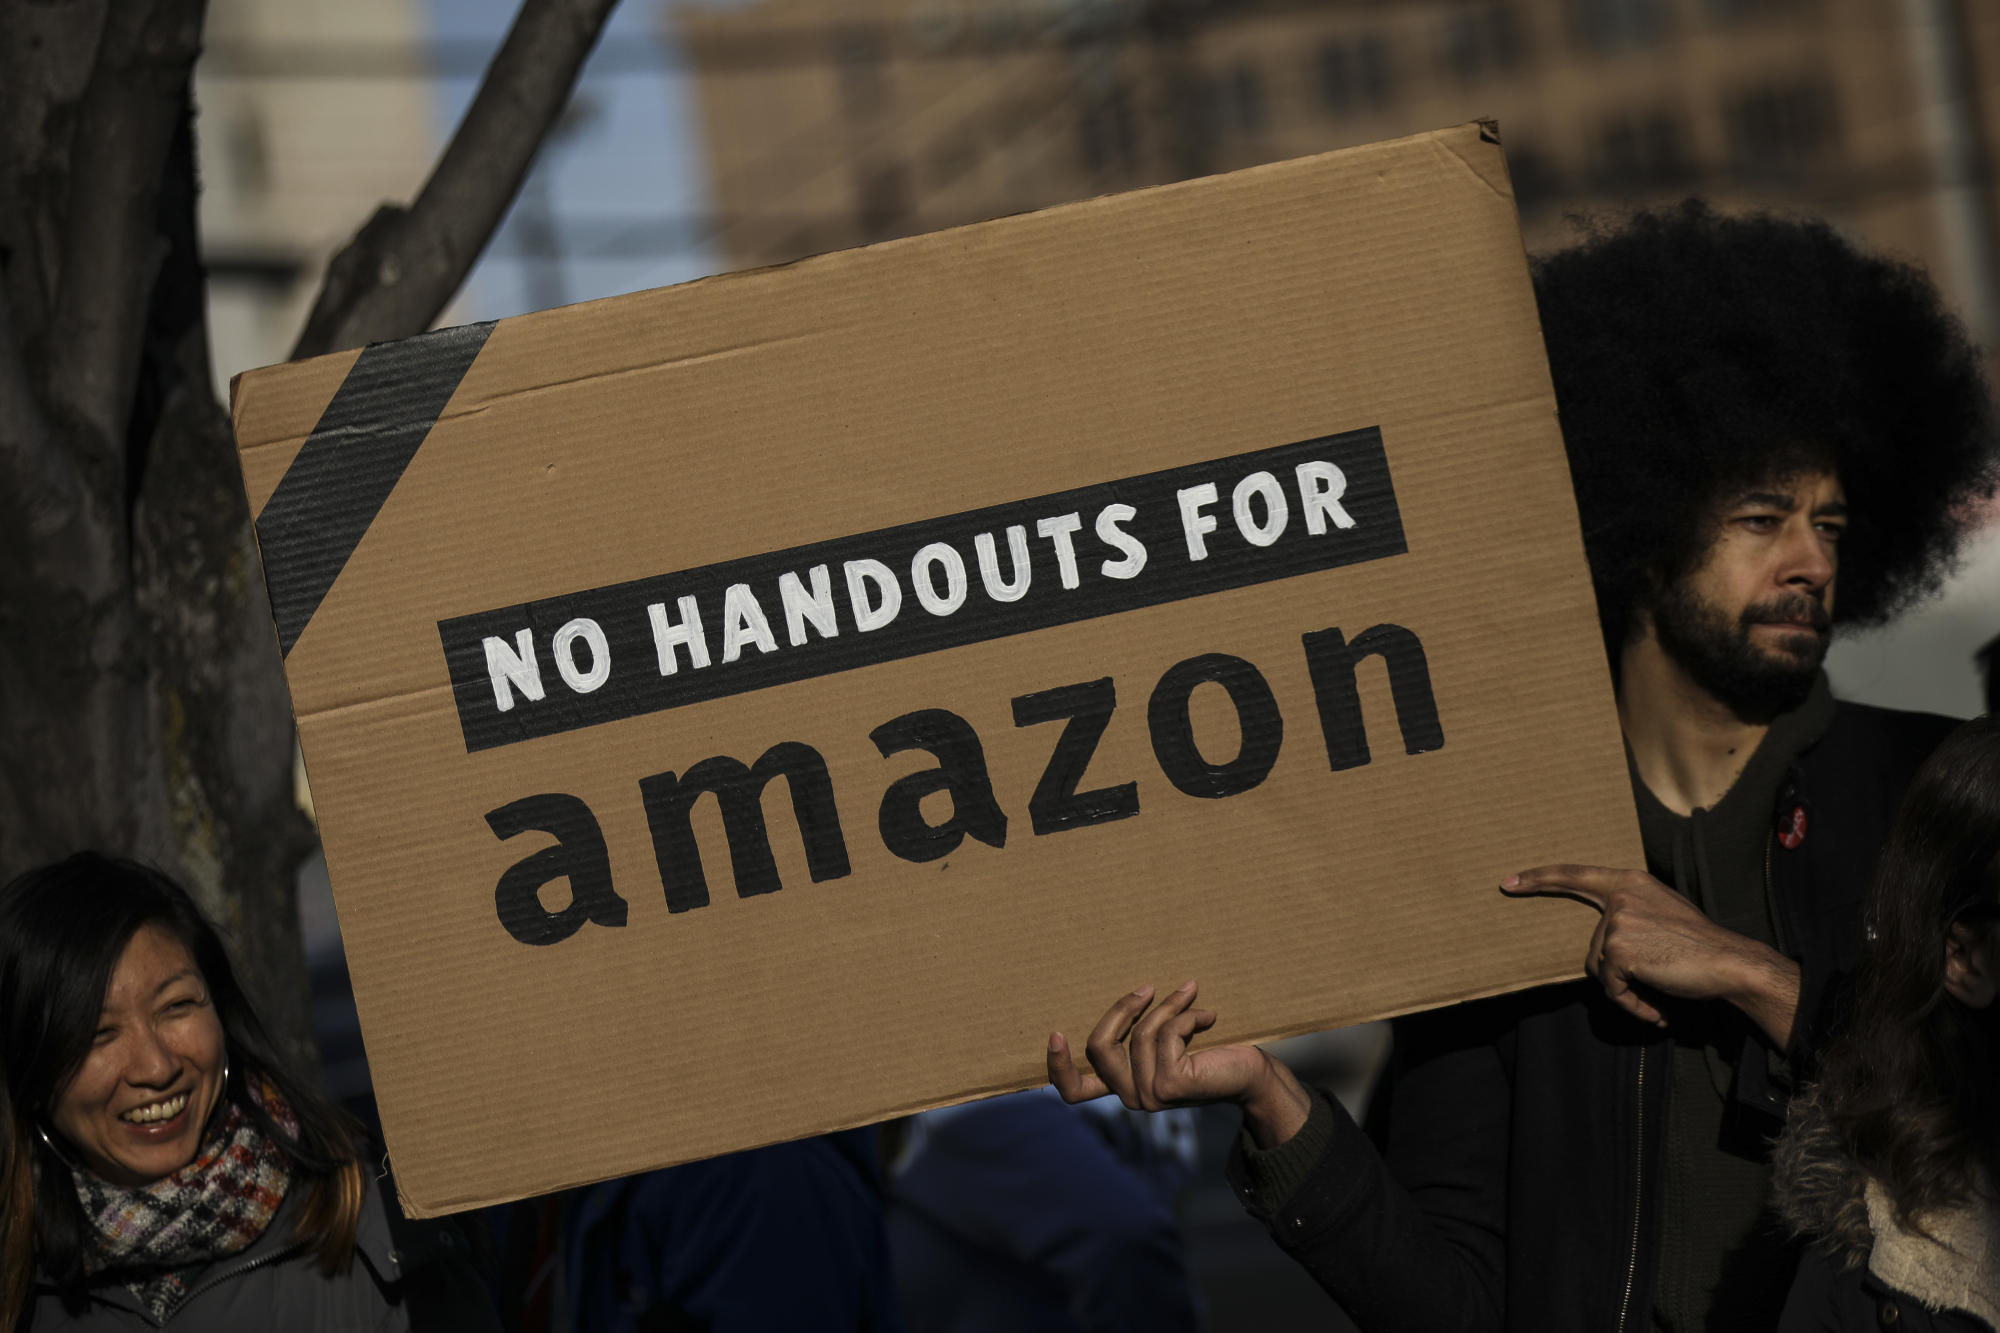 NYC 'the bigger loser' in Amazon's HQ2 decision